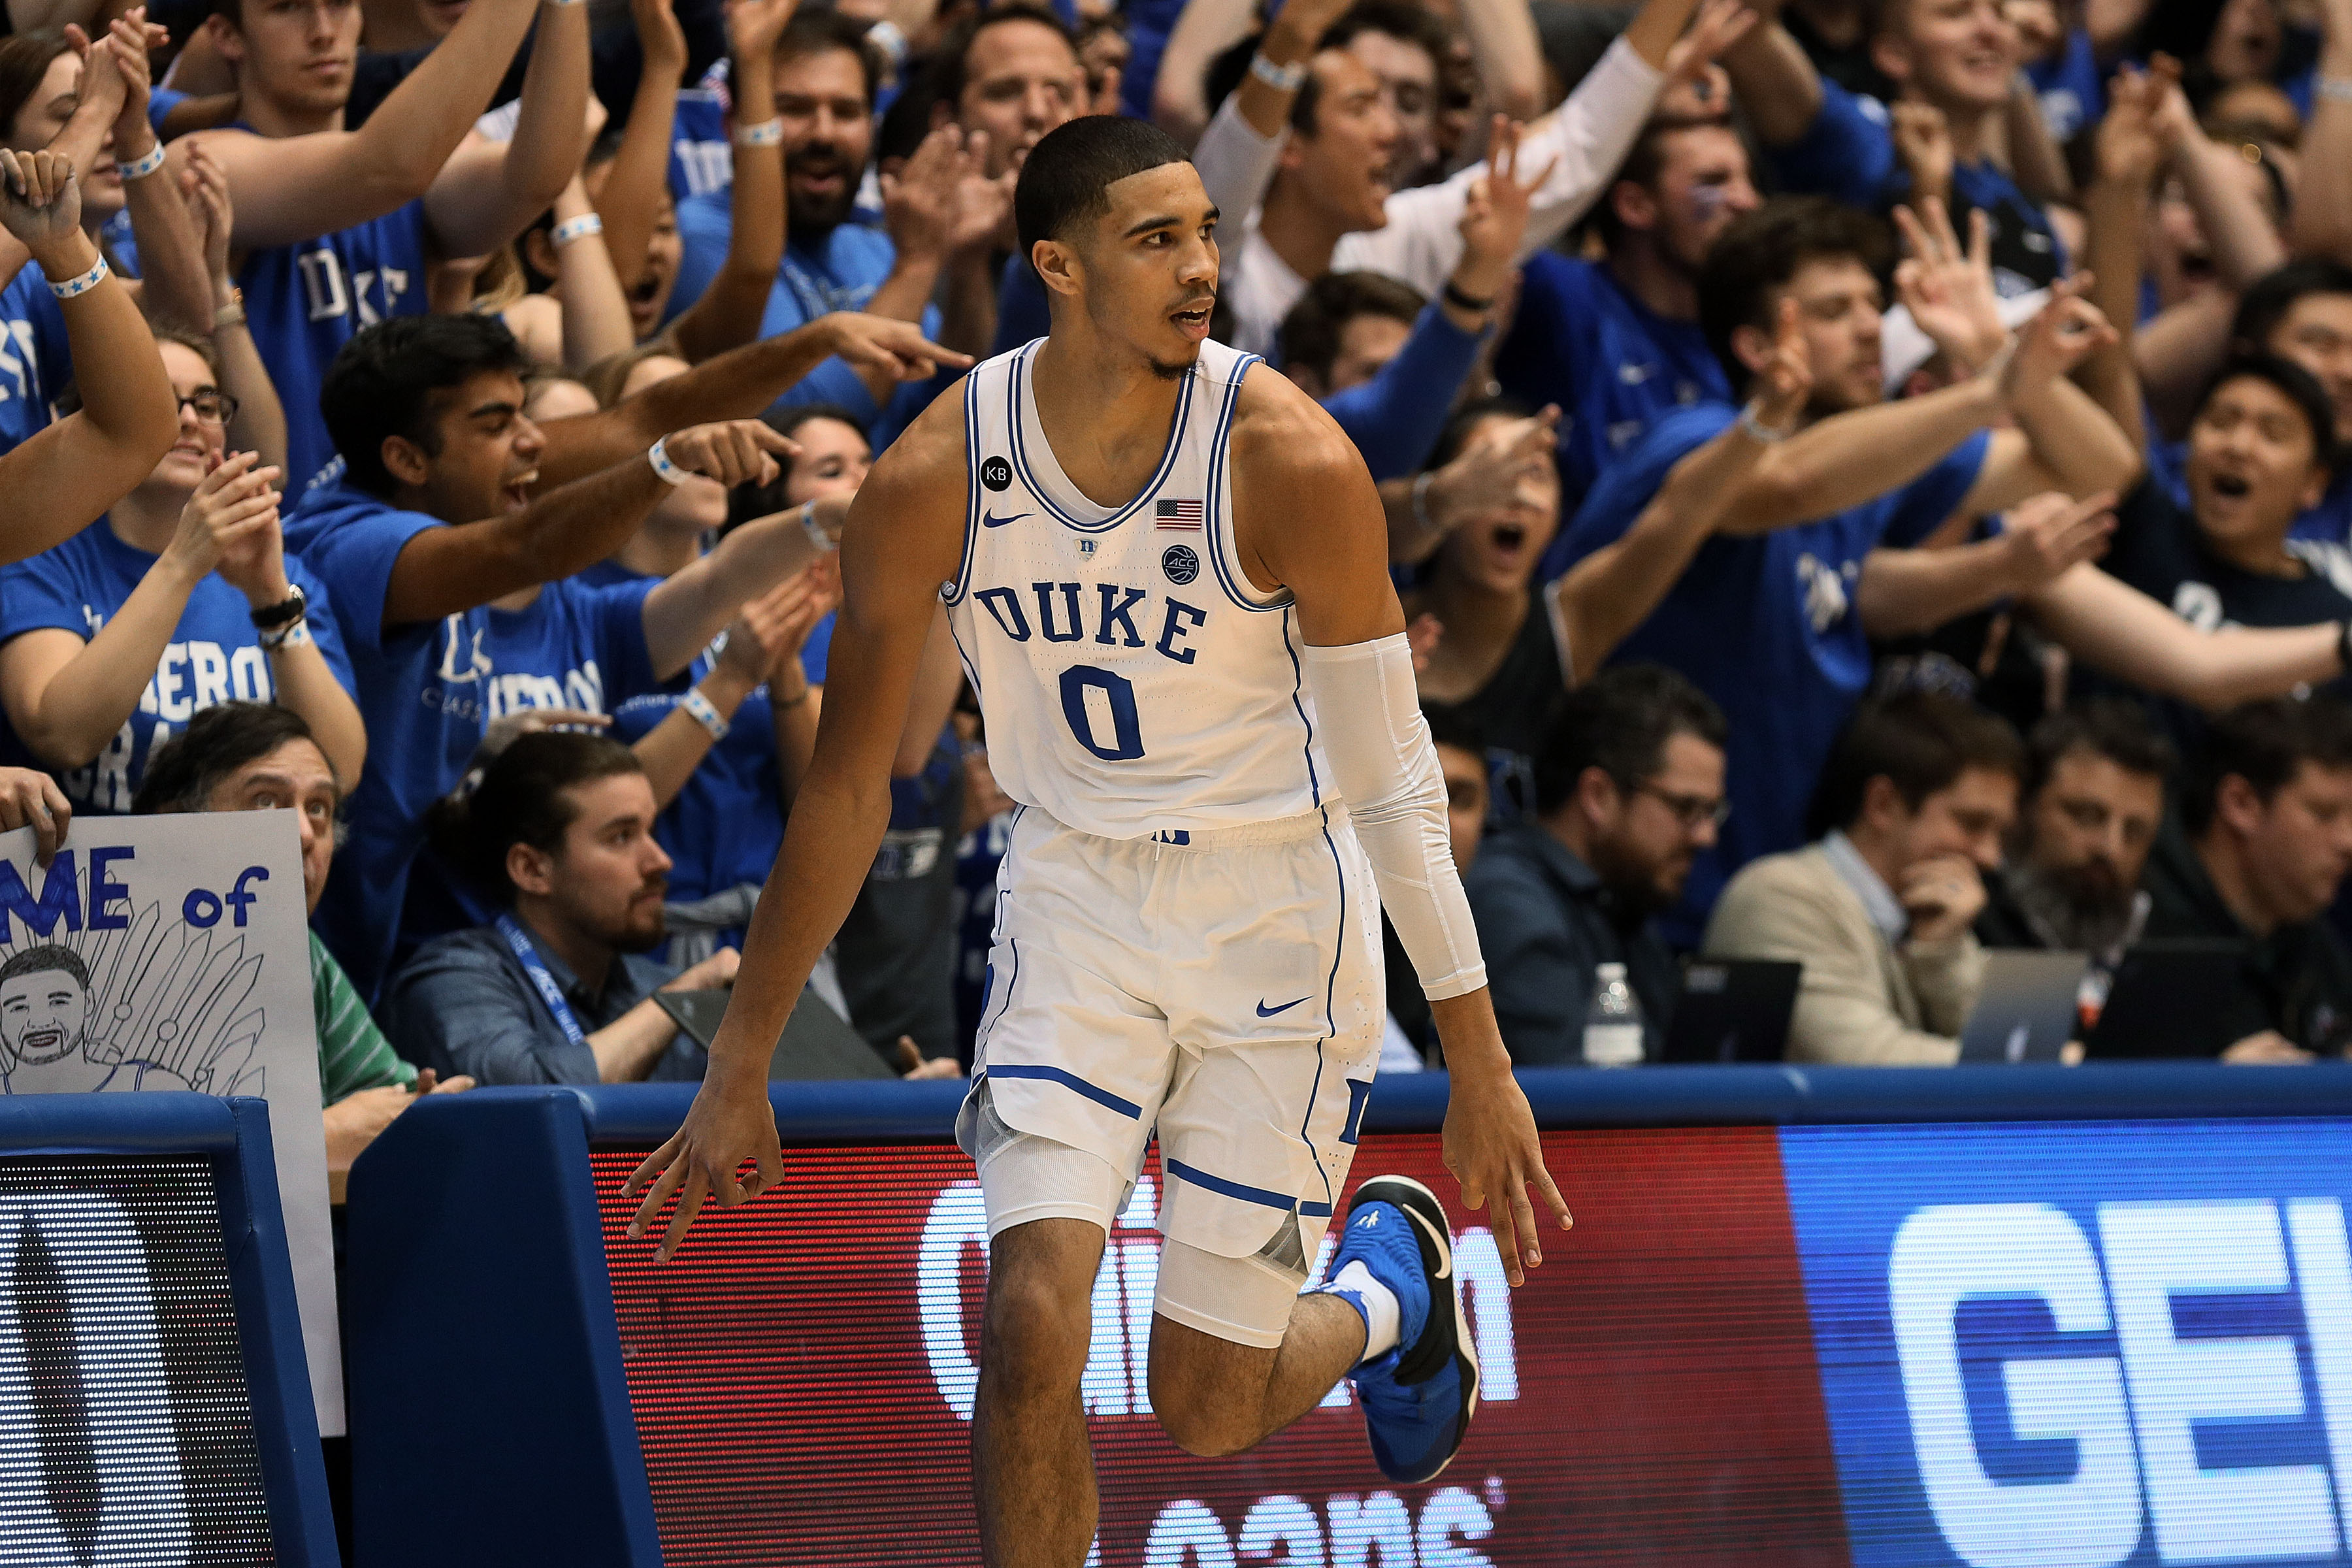 duke basketball - photo #21